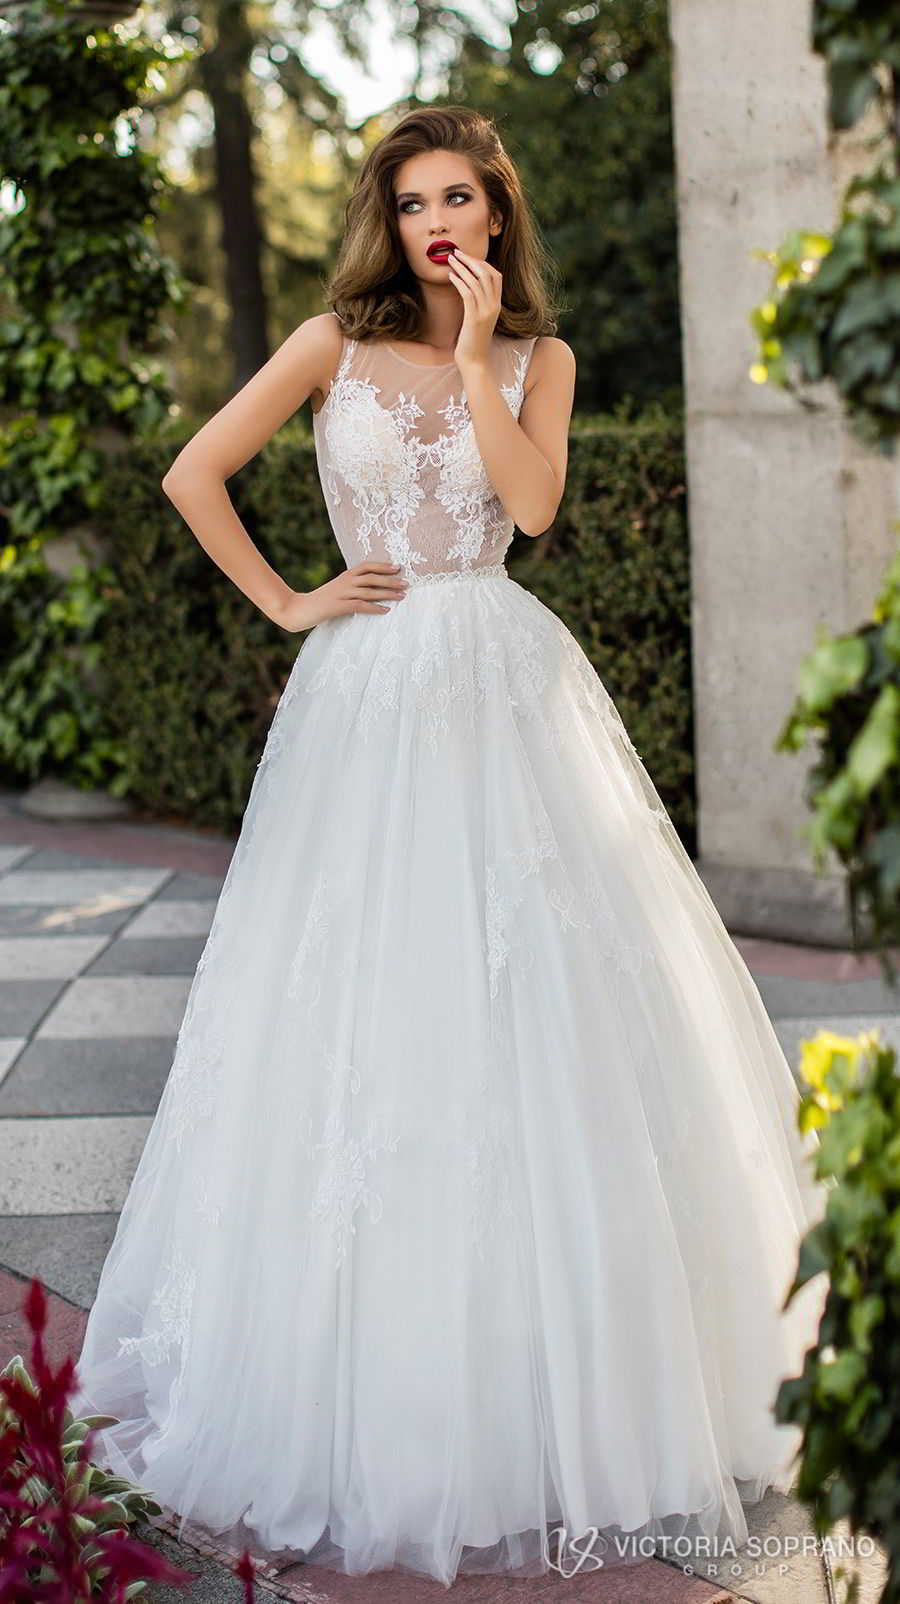 victoria soprano 2018 bridal sleeveless illusion jewel sweetheart neckline heavily embellished bodice romantic a line wedding dress sheer lace back chapel train (lilou) mv